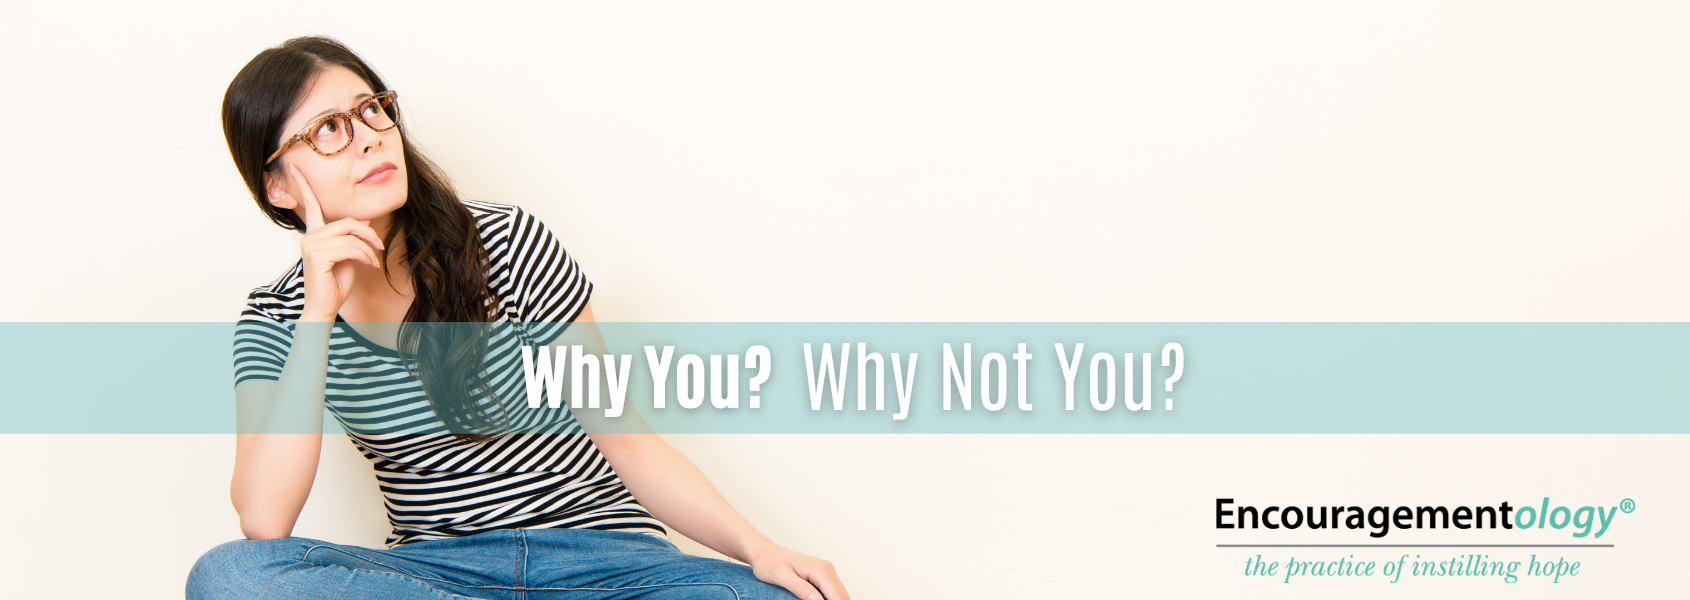 Why you? Accepting Life's Challenges